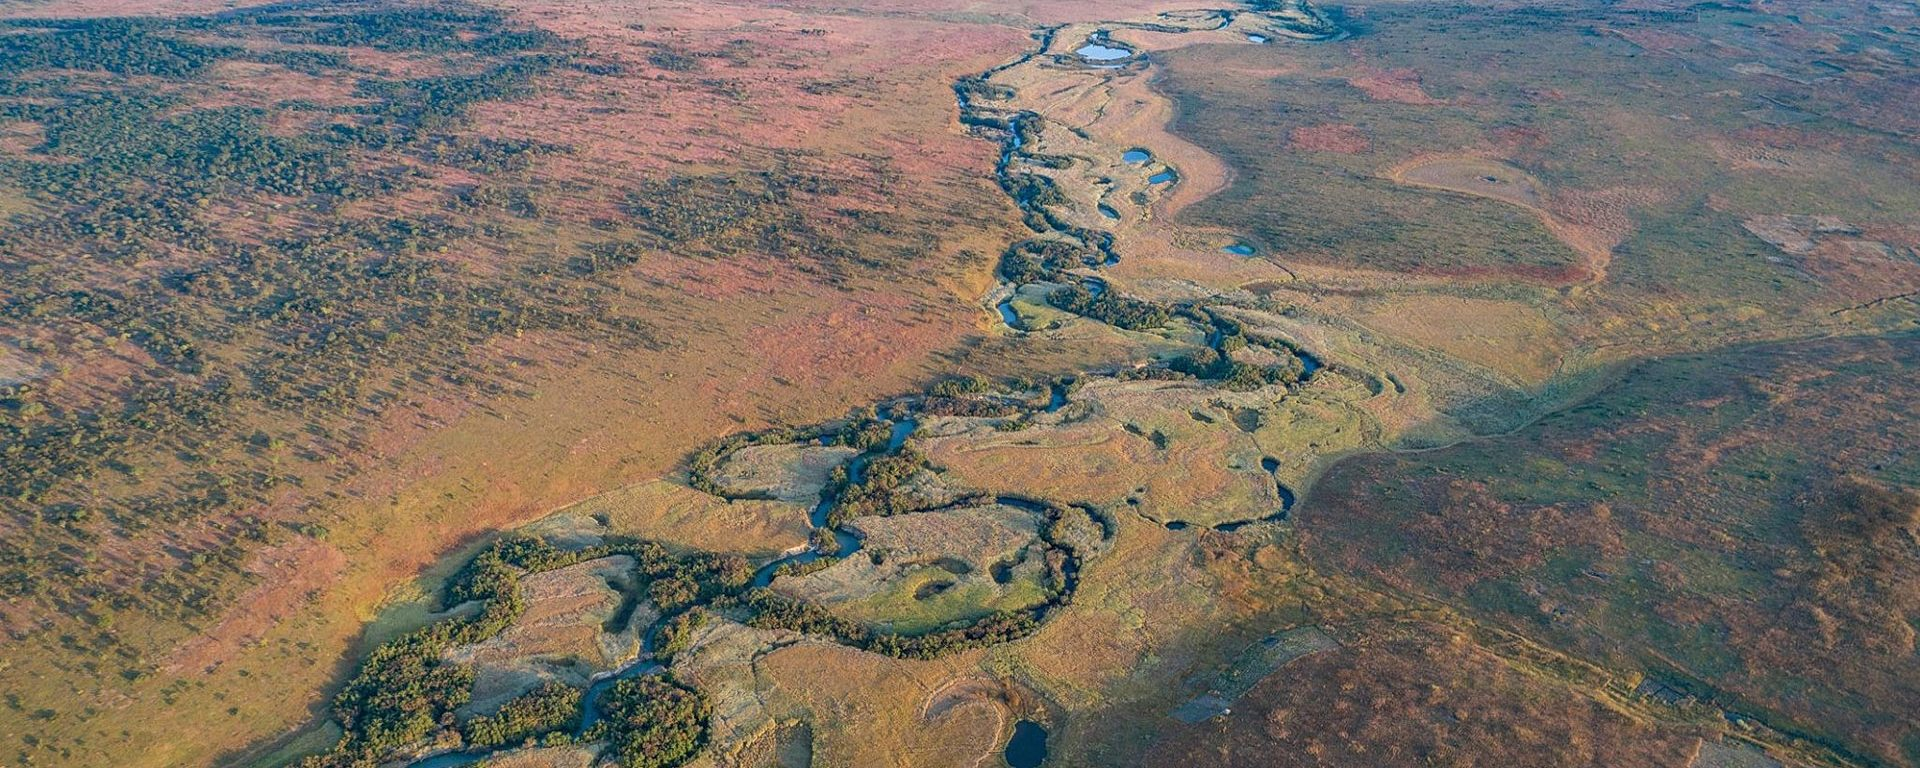 Aerial view of a winding river in the source lakes region of Angola